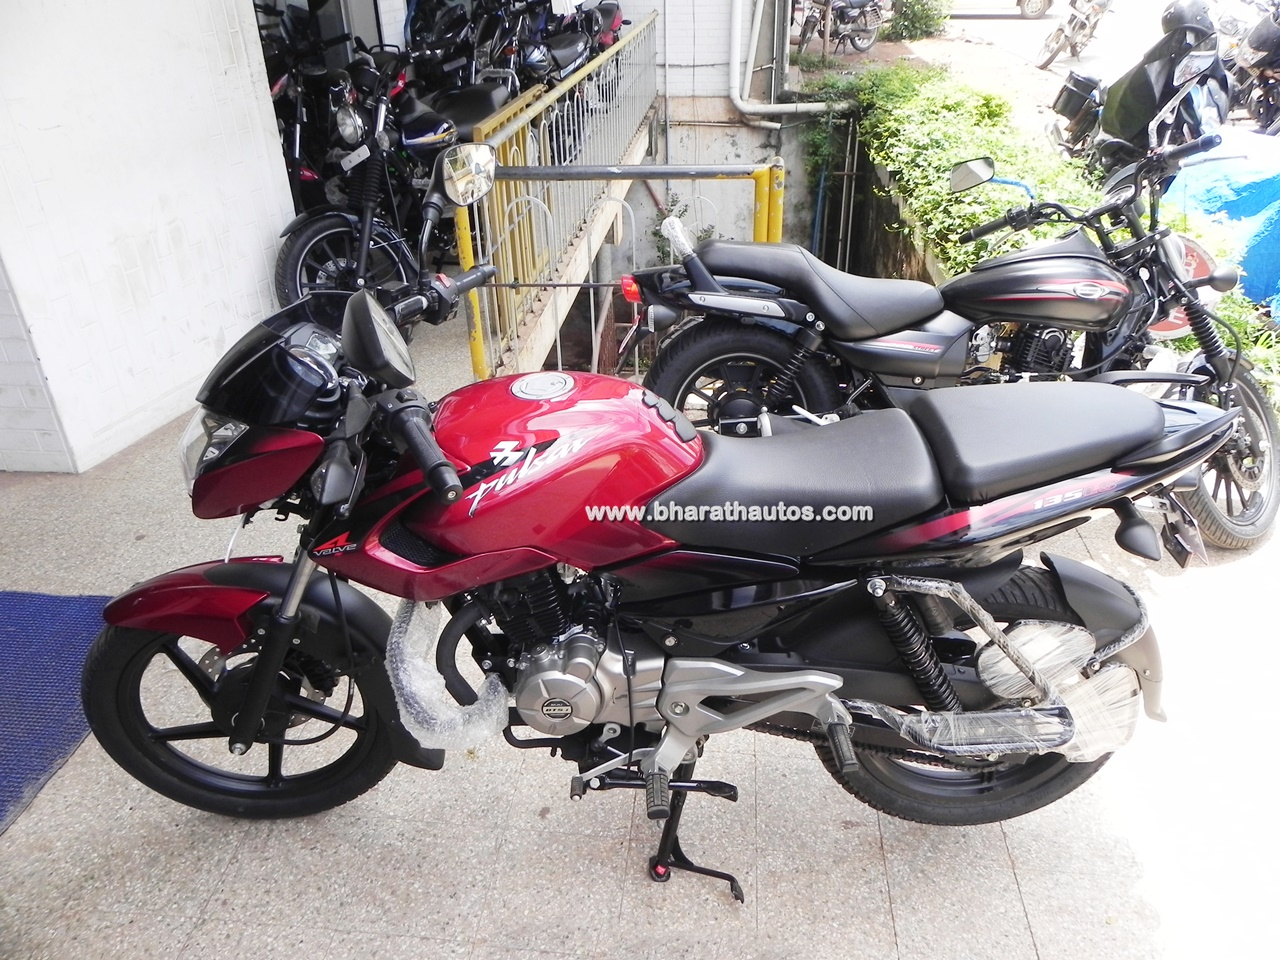 Bajaj pulsar 135 ls cocktail wine red colour body decals